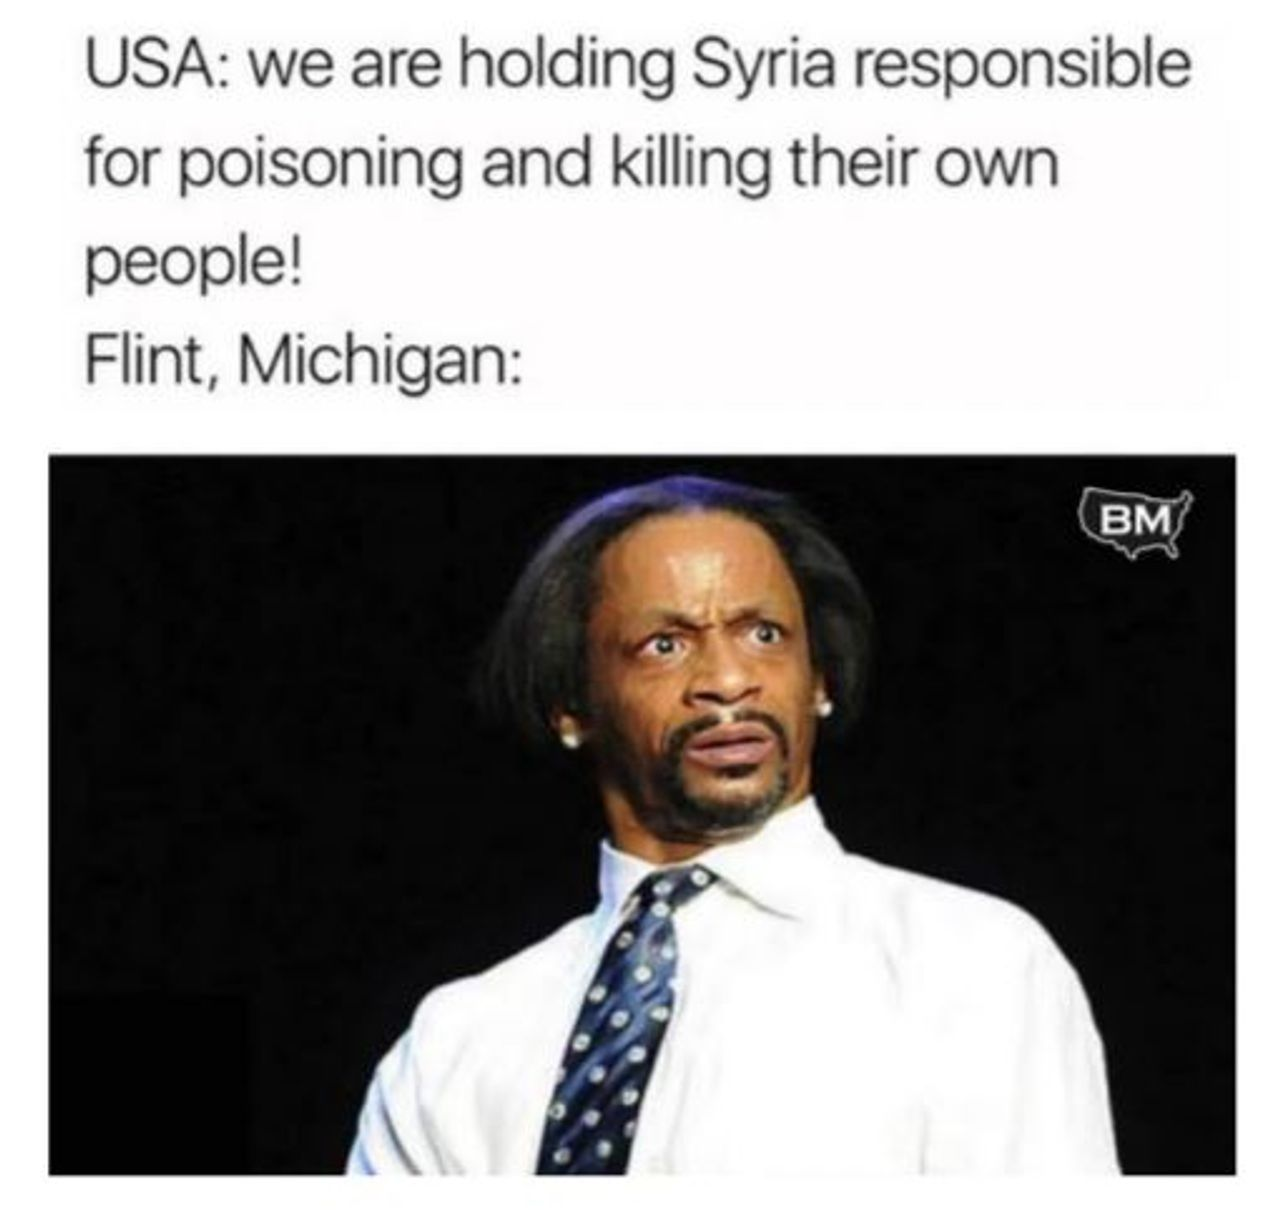 Flint, Michigan poisoned water. Another example of what Facebook and New Knowledge call 'Russian Propaganda'